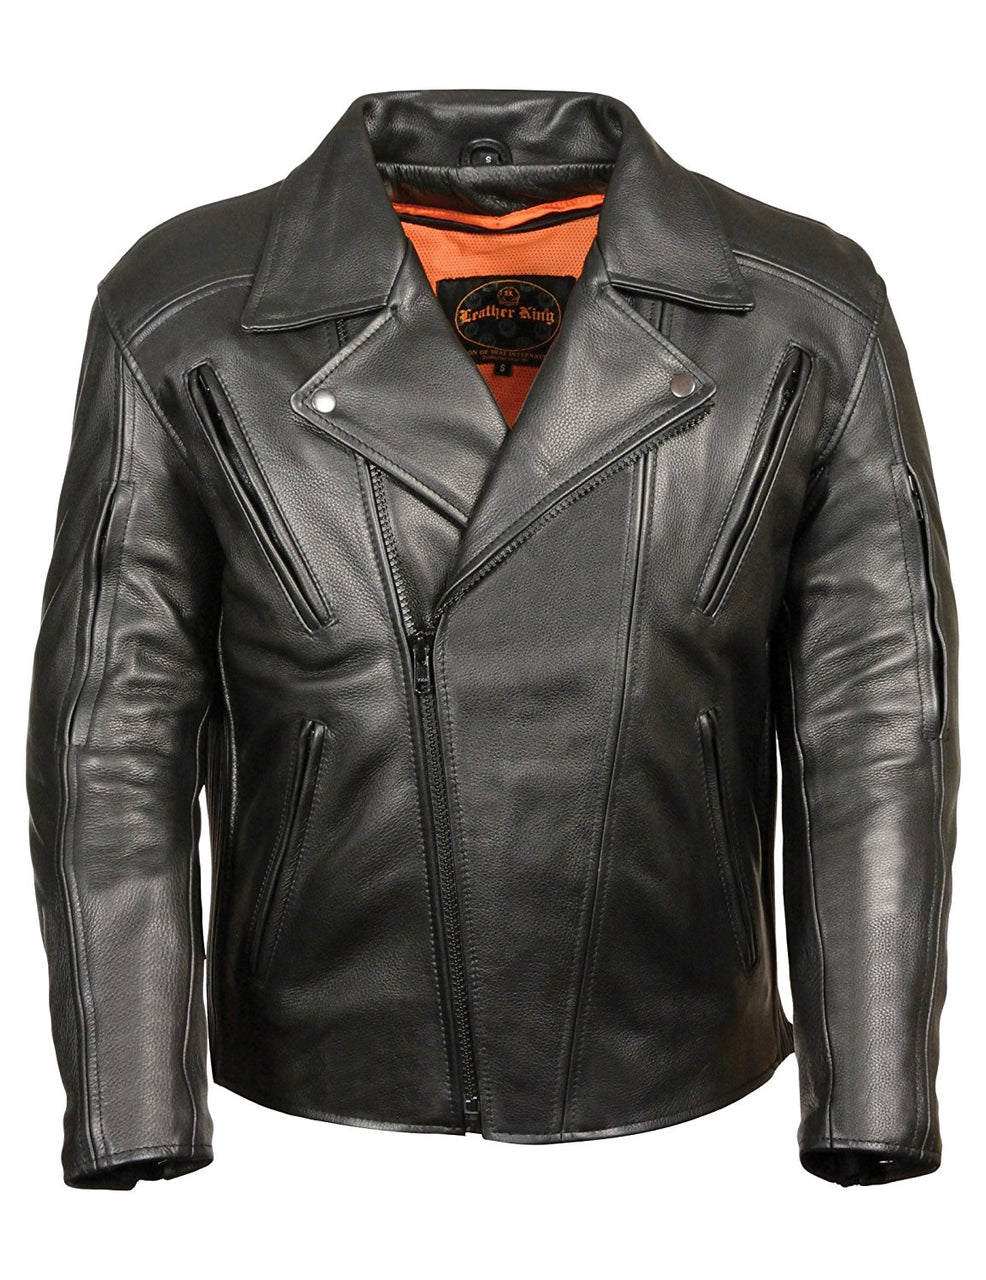 Leather King Men's Denim Vented Antique Brass Hardware Jacket - highwayleather